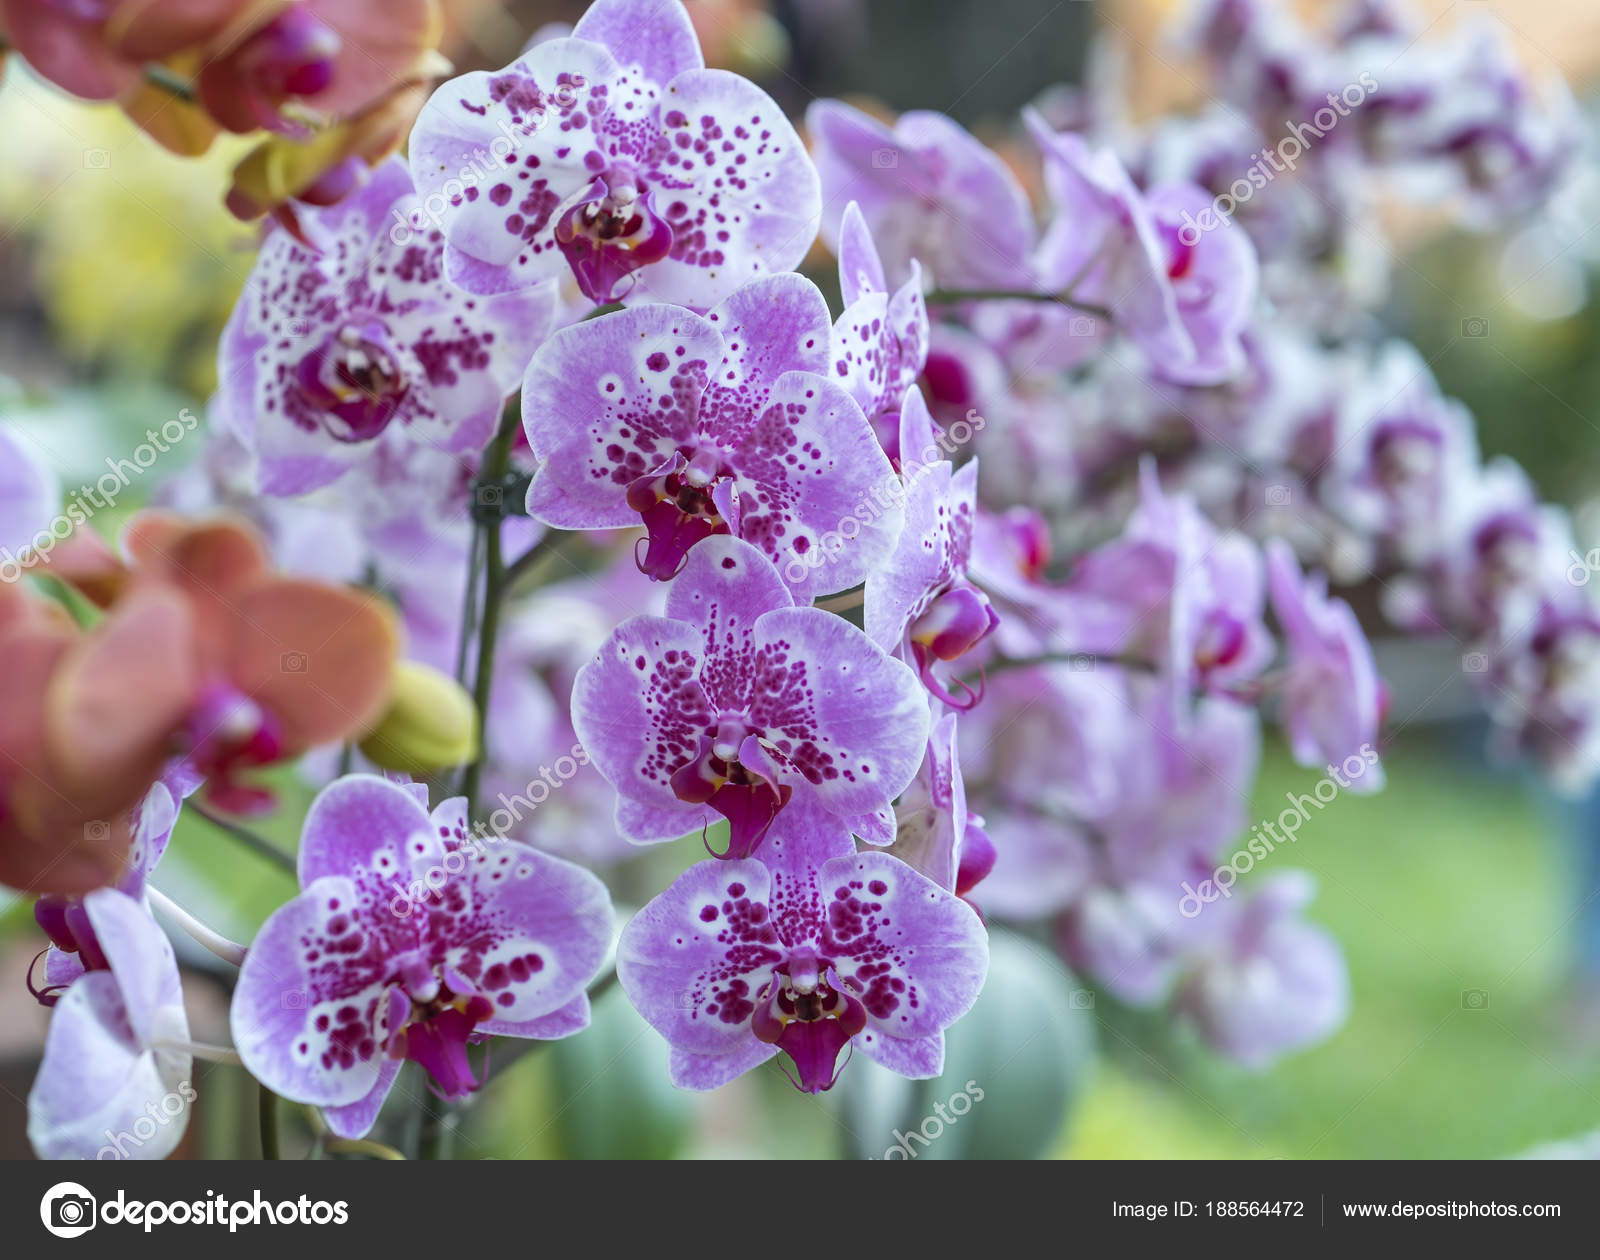 Phalaenopsis flowers bloom spring adorn beauty nature most beautiful phalaenopsis flowers bloom spring adorn beauty nature most beautiful orchid stock photo izmirmasajfo